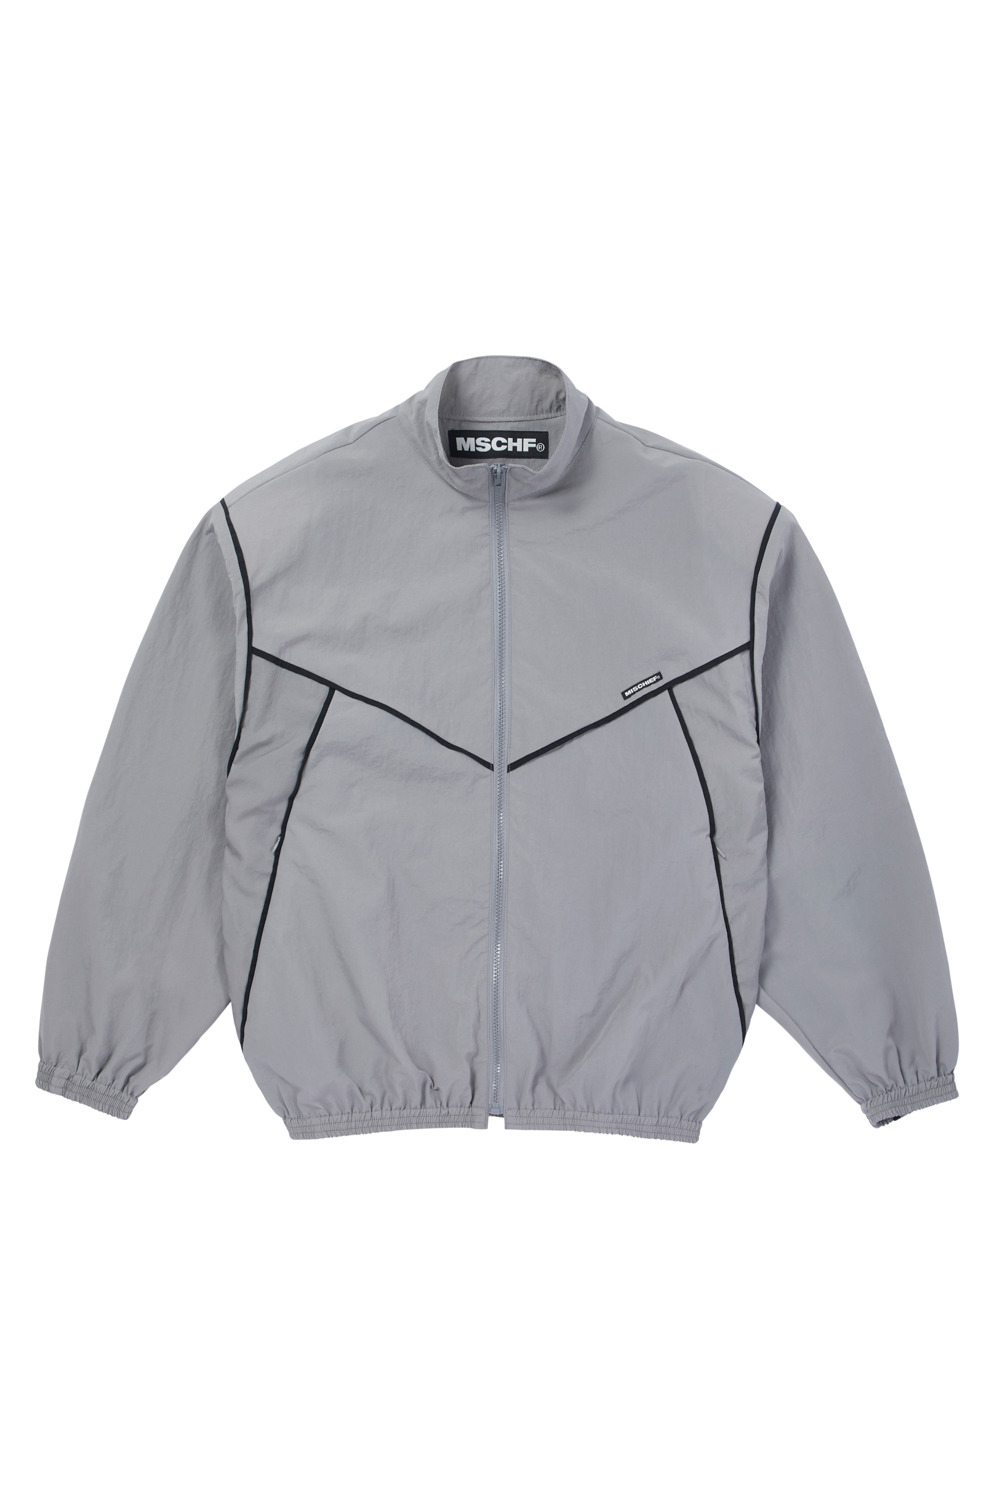 SINCE 2010 WINDBREAKER_gray